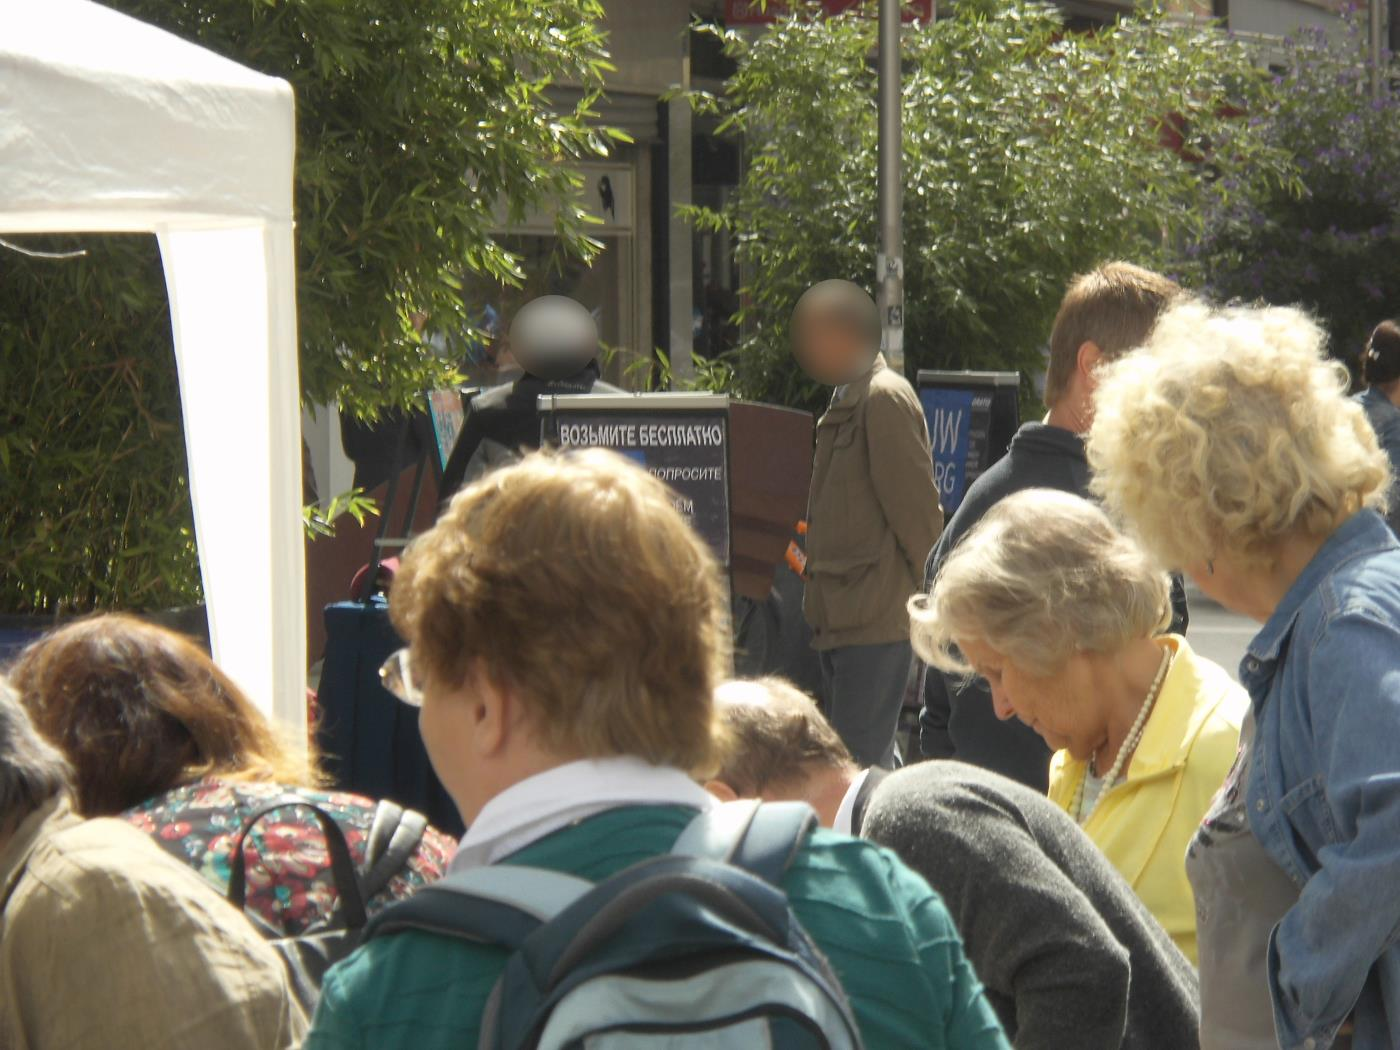 Bruchsal: Jehovah's Witnesses blocked